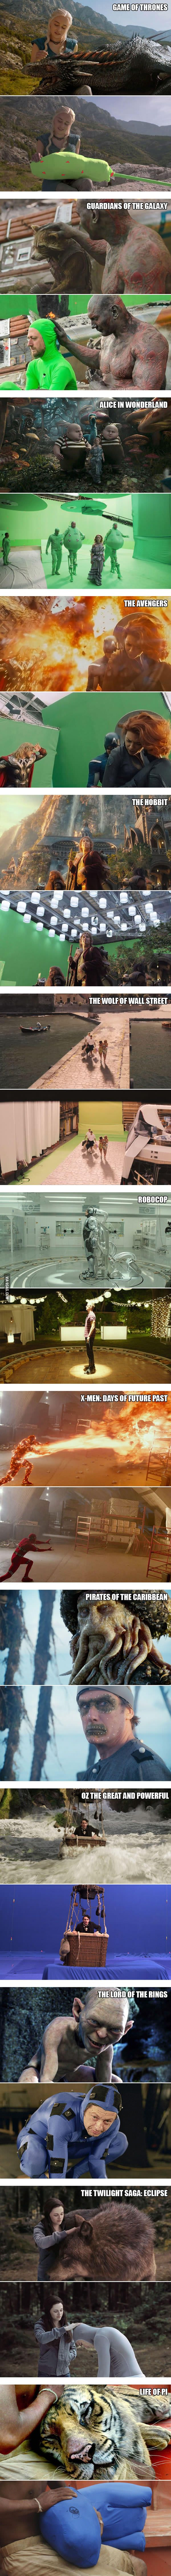 The wonders of CGI and special effects . Movies are art because they have to create artwork that can be seen as if it were real